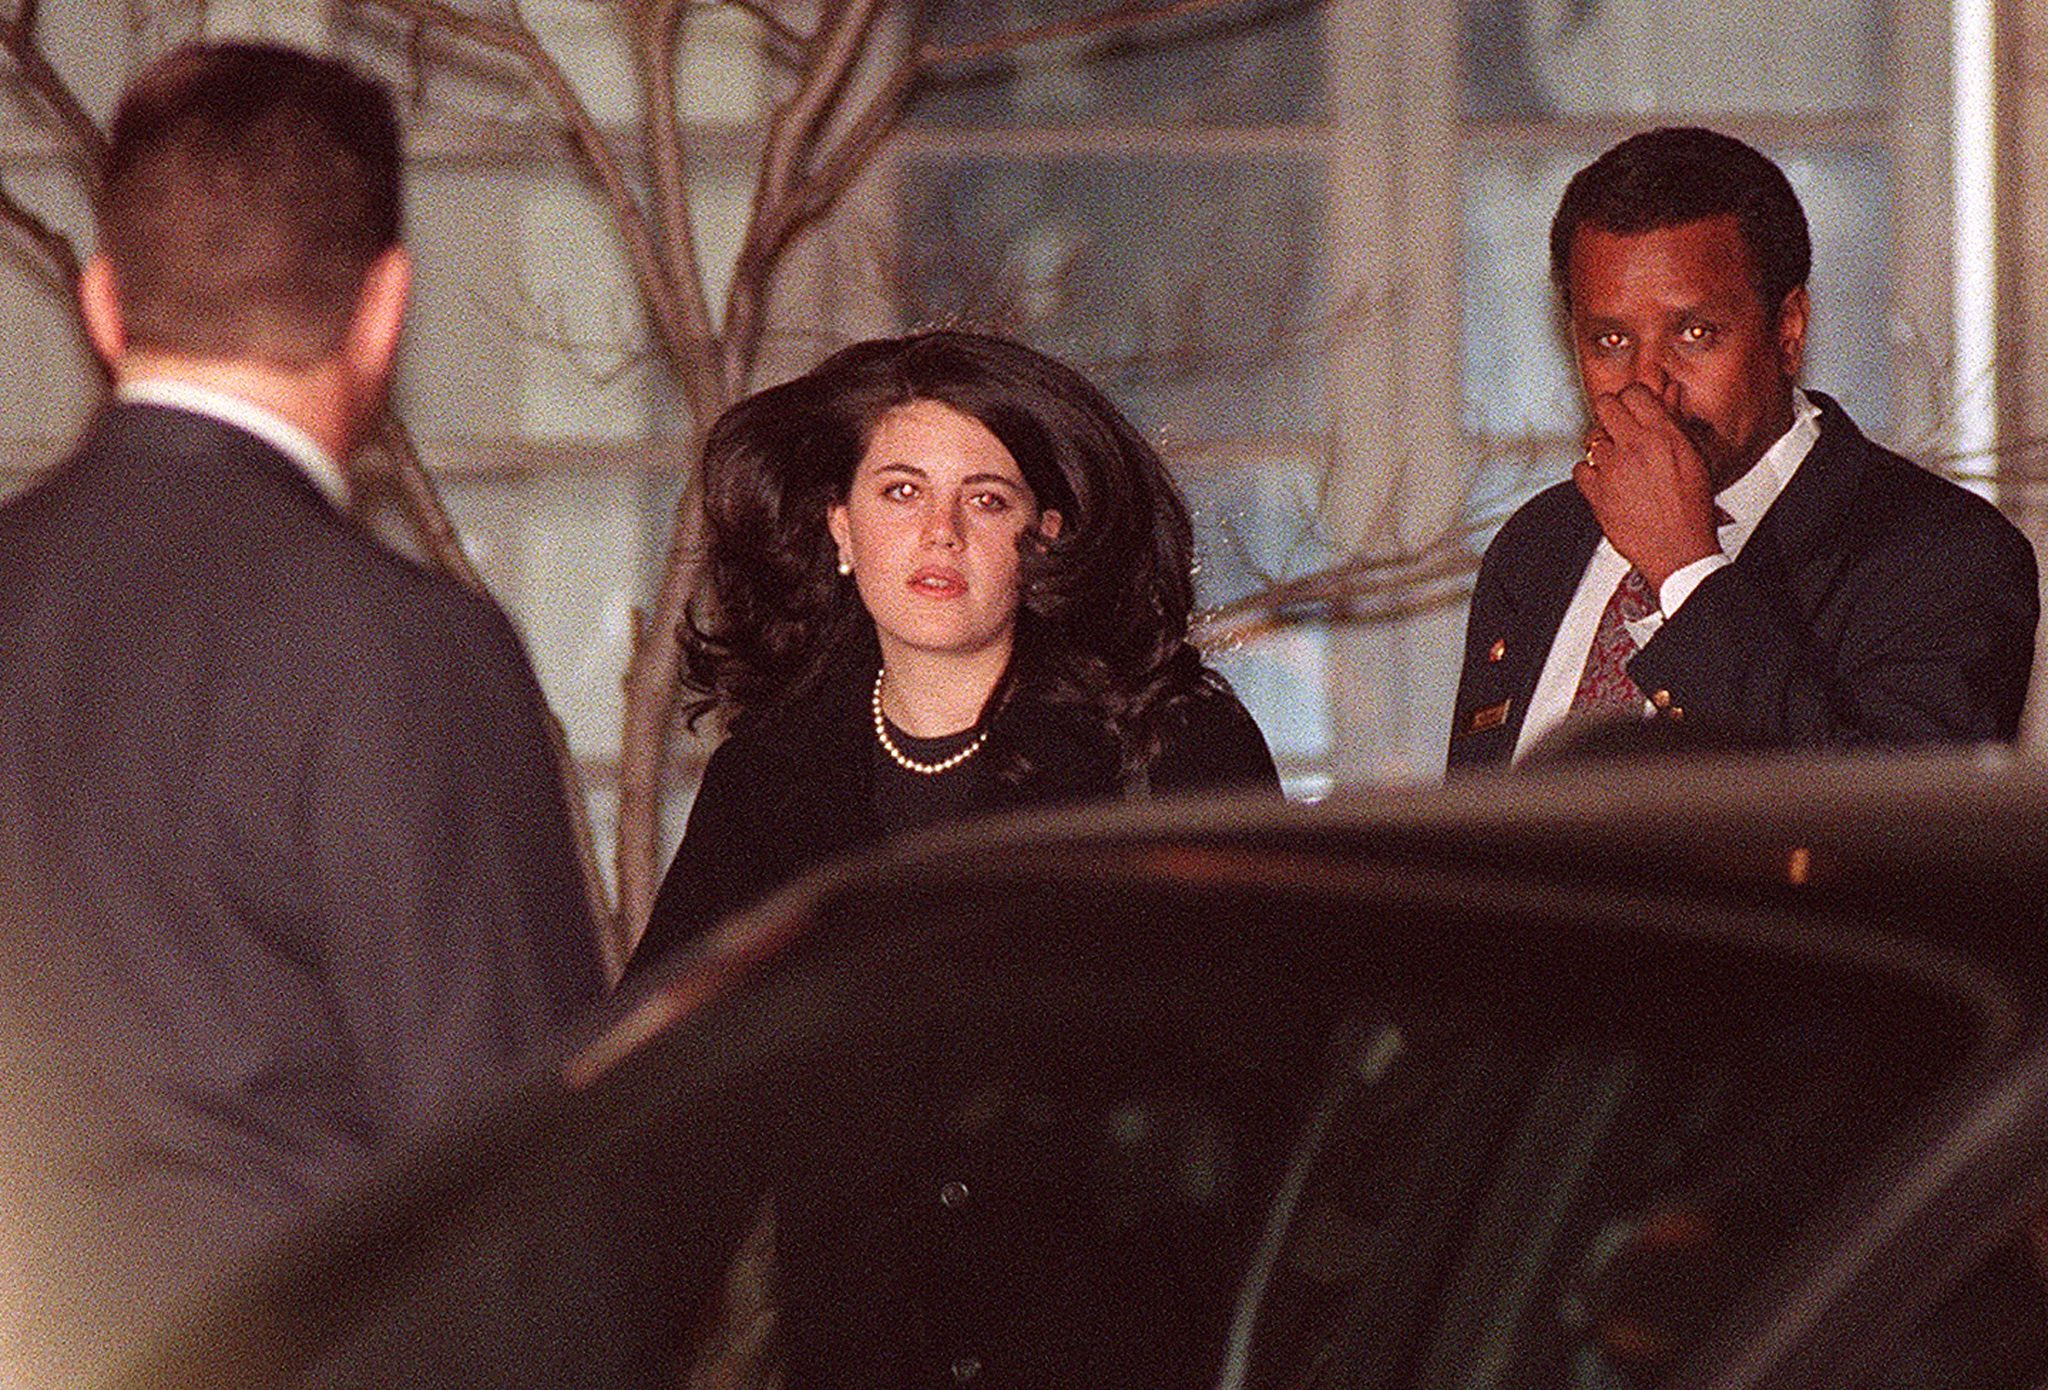 Monica Lewinsky (C), the former White House intern who allegedly had an affair with US President Bill Clinton, walks to a waiting car 29 January at the Cosmos Club in Washington DC. (TIMOTHY CLARY/AFP via Getty Images)